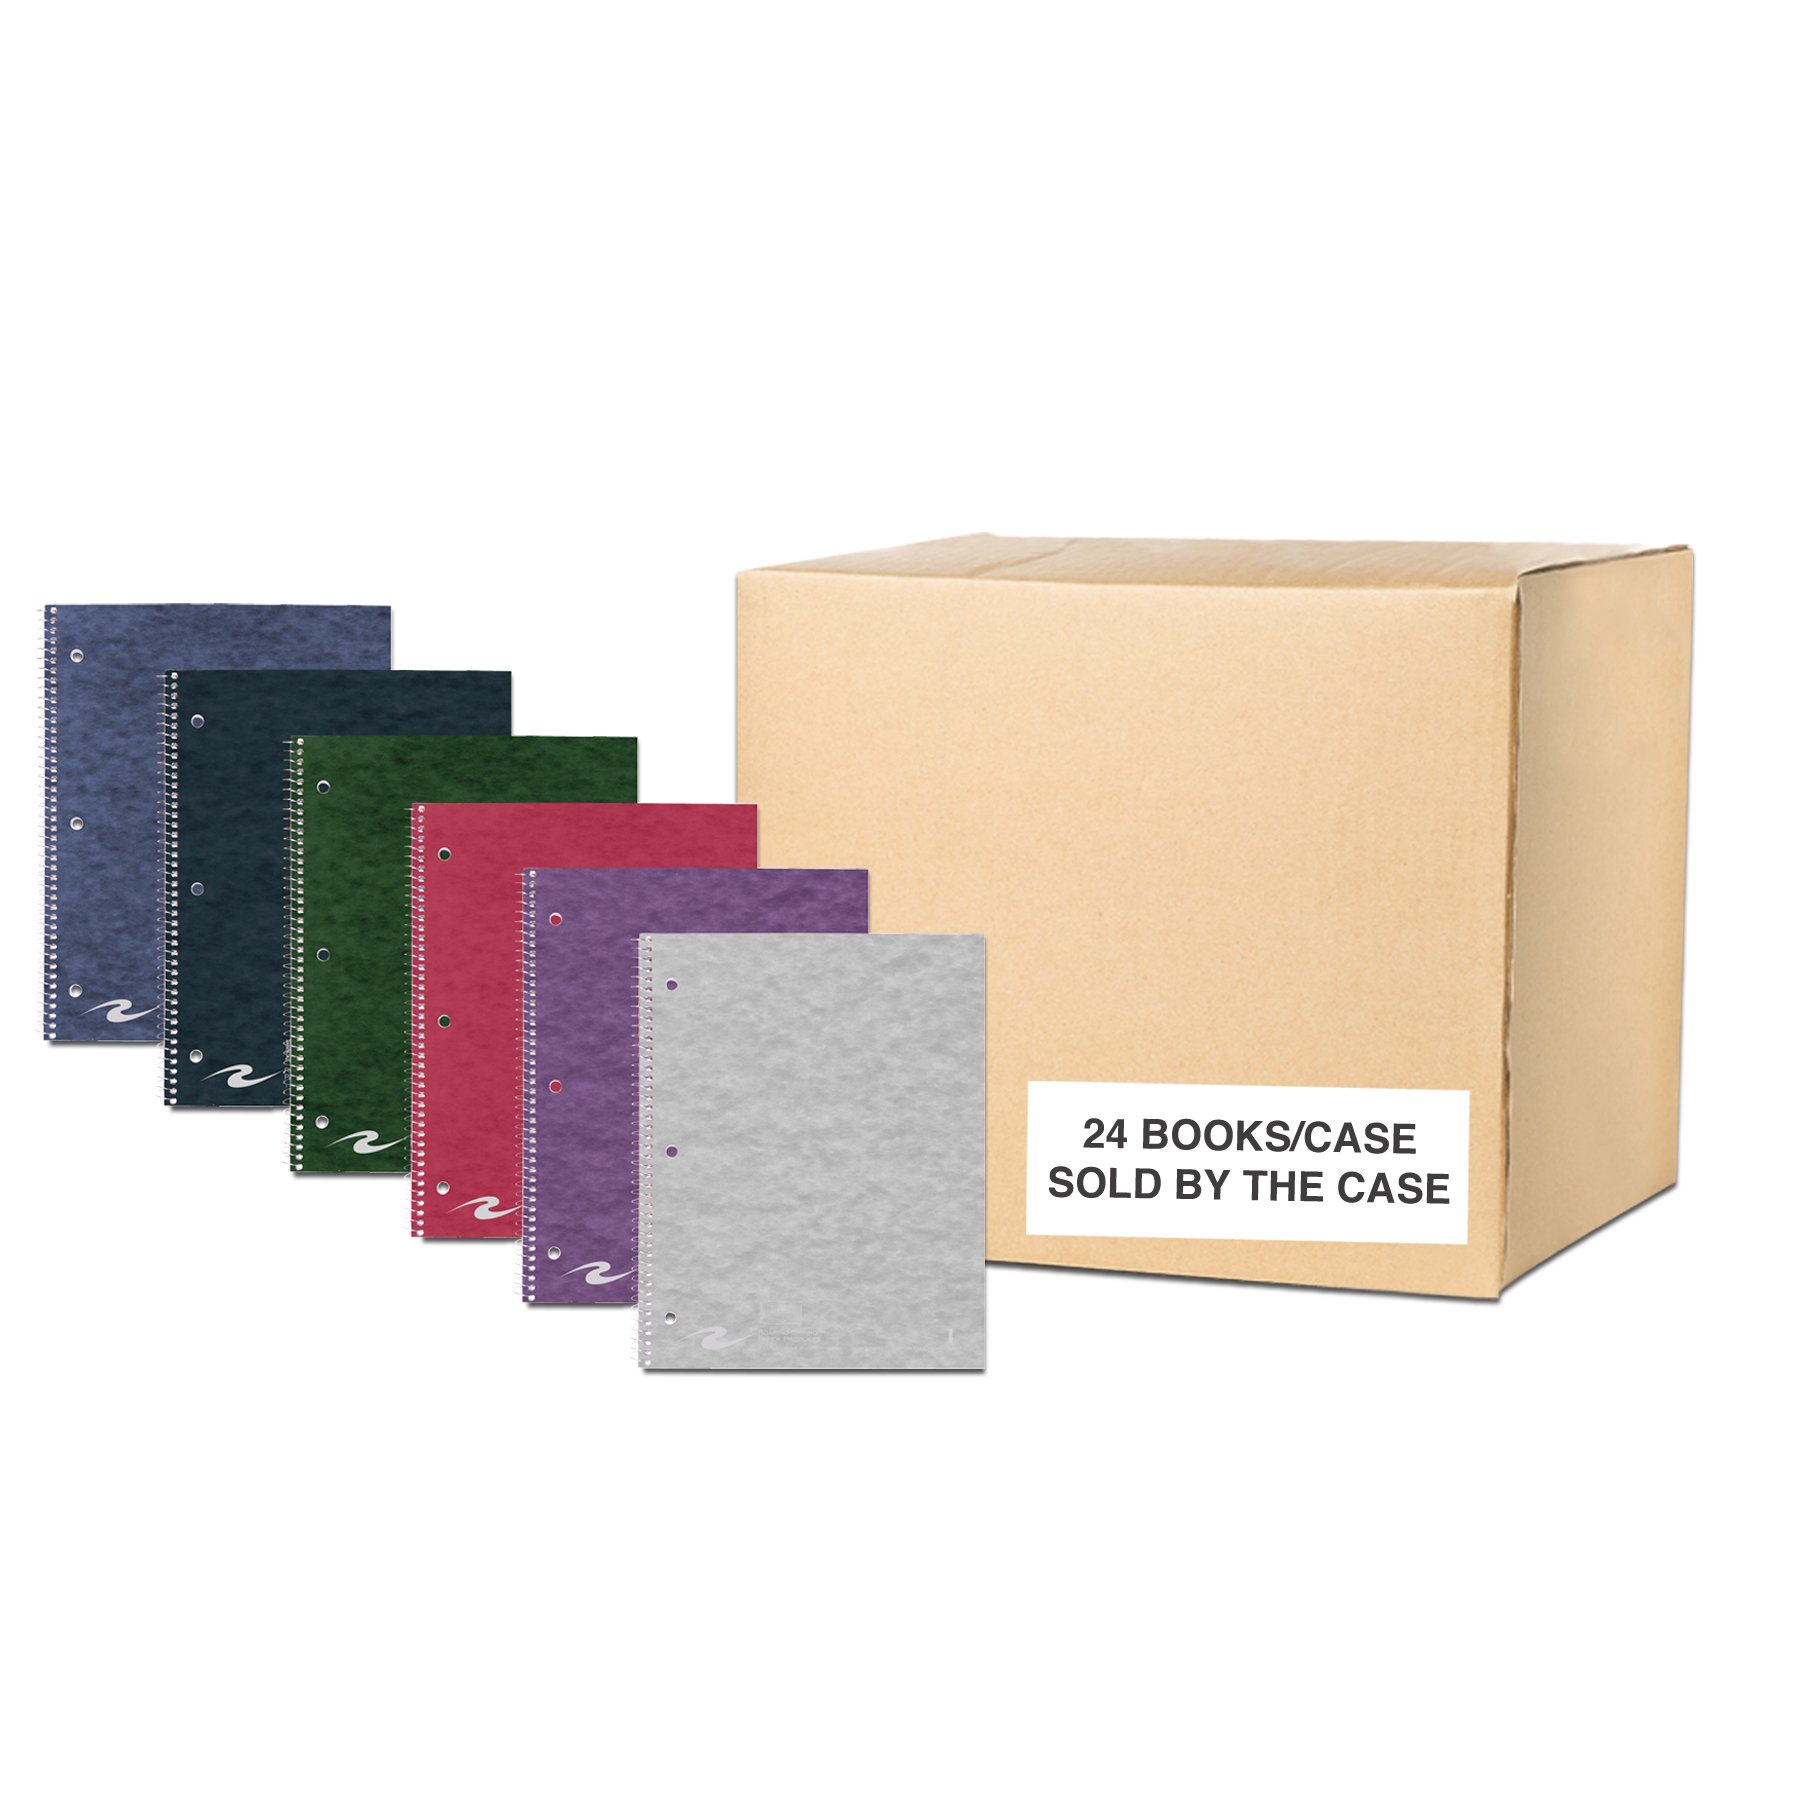 Case of 24 Stasher One Subject Notebooks, 11''x9'', 100 sheets 15# White Paper, 15 pt Assorted covers, wirebound, Narrow Ruled W/Margin, Perforated